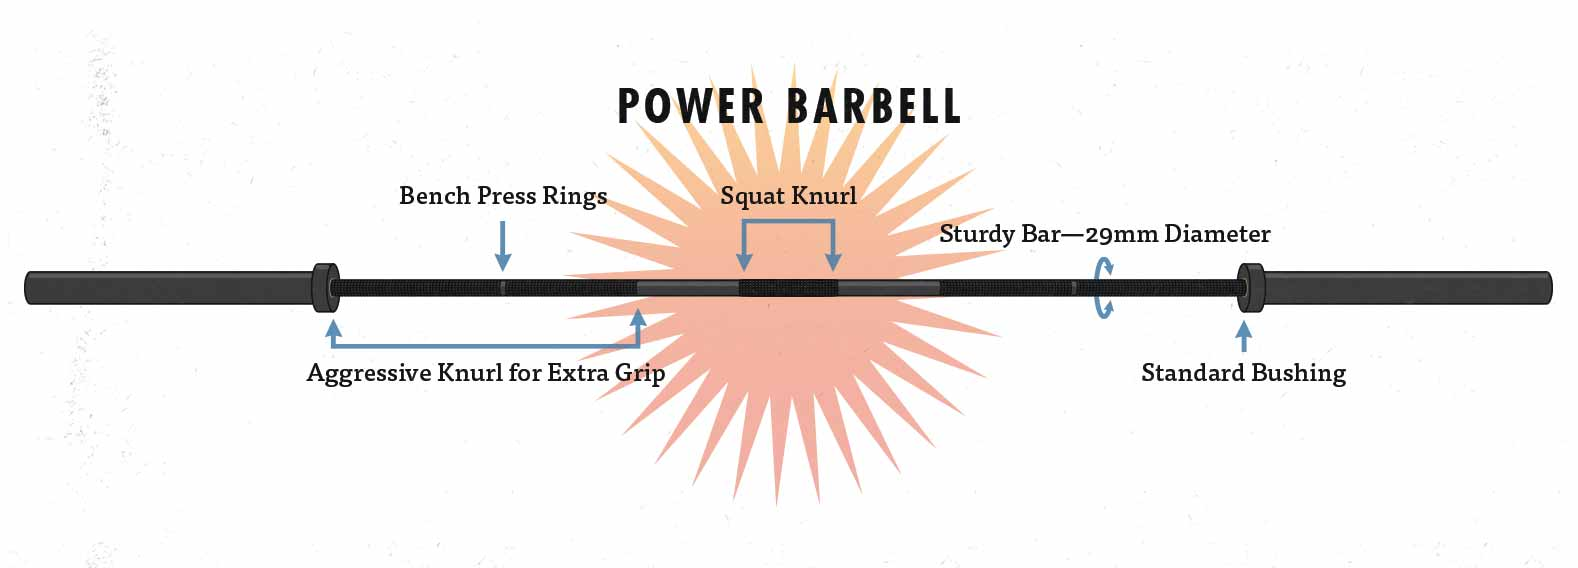 Diagram of a strength training power bar barbell.